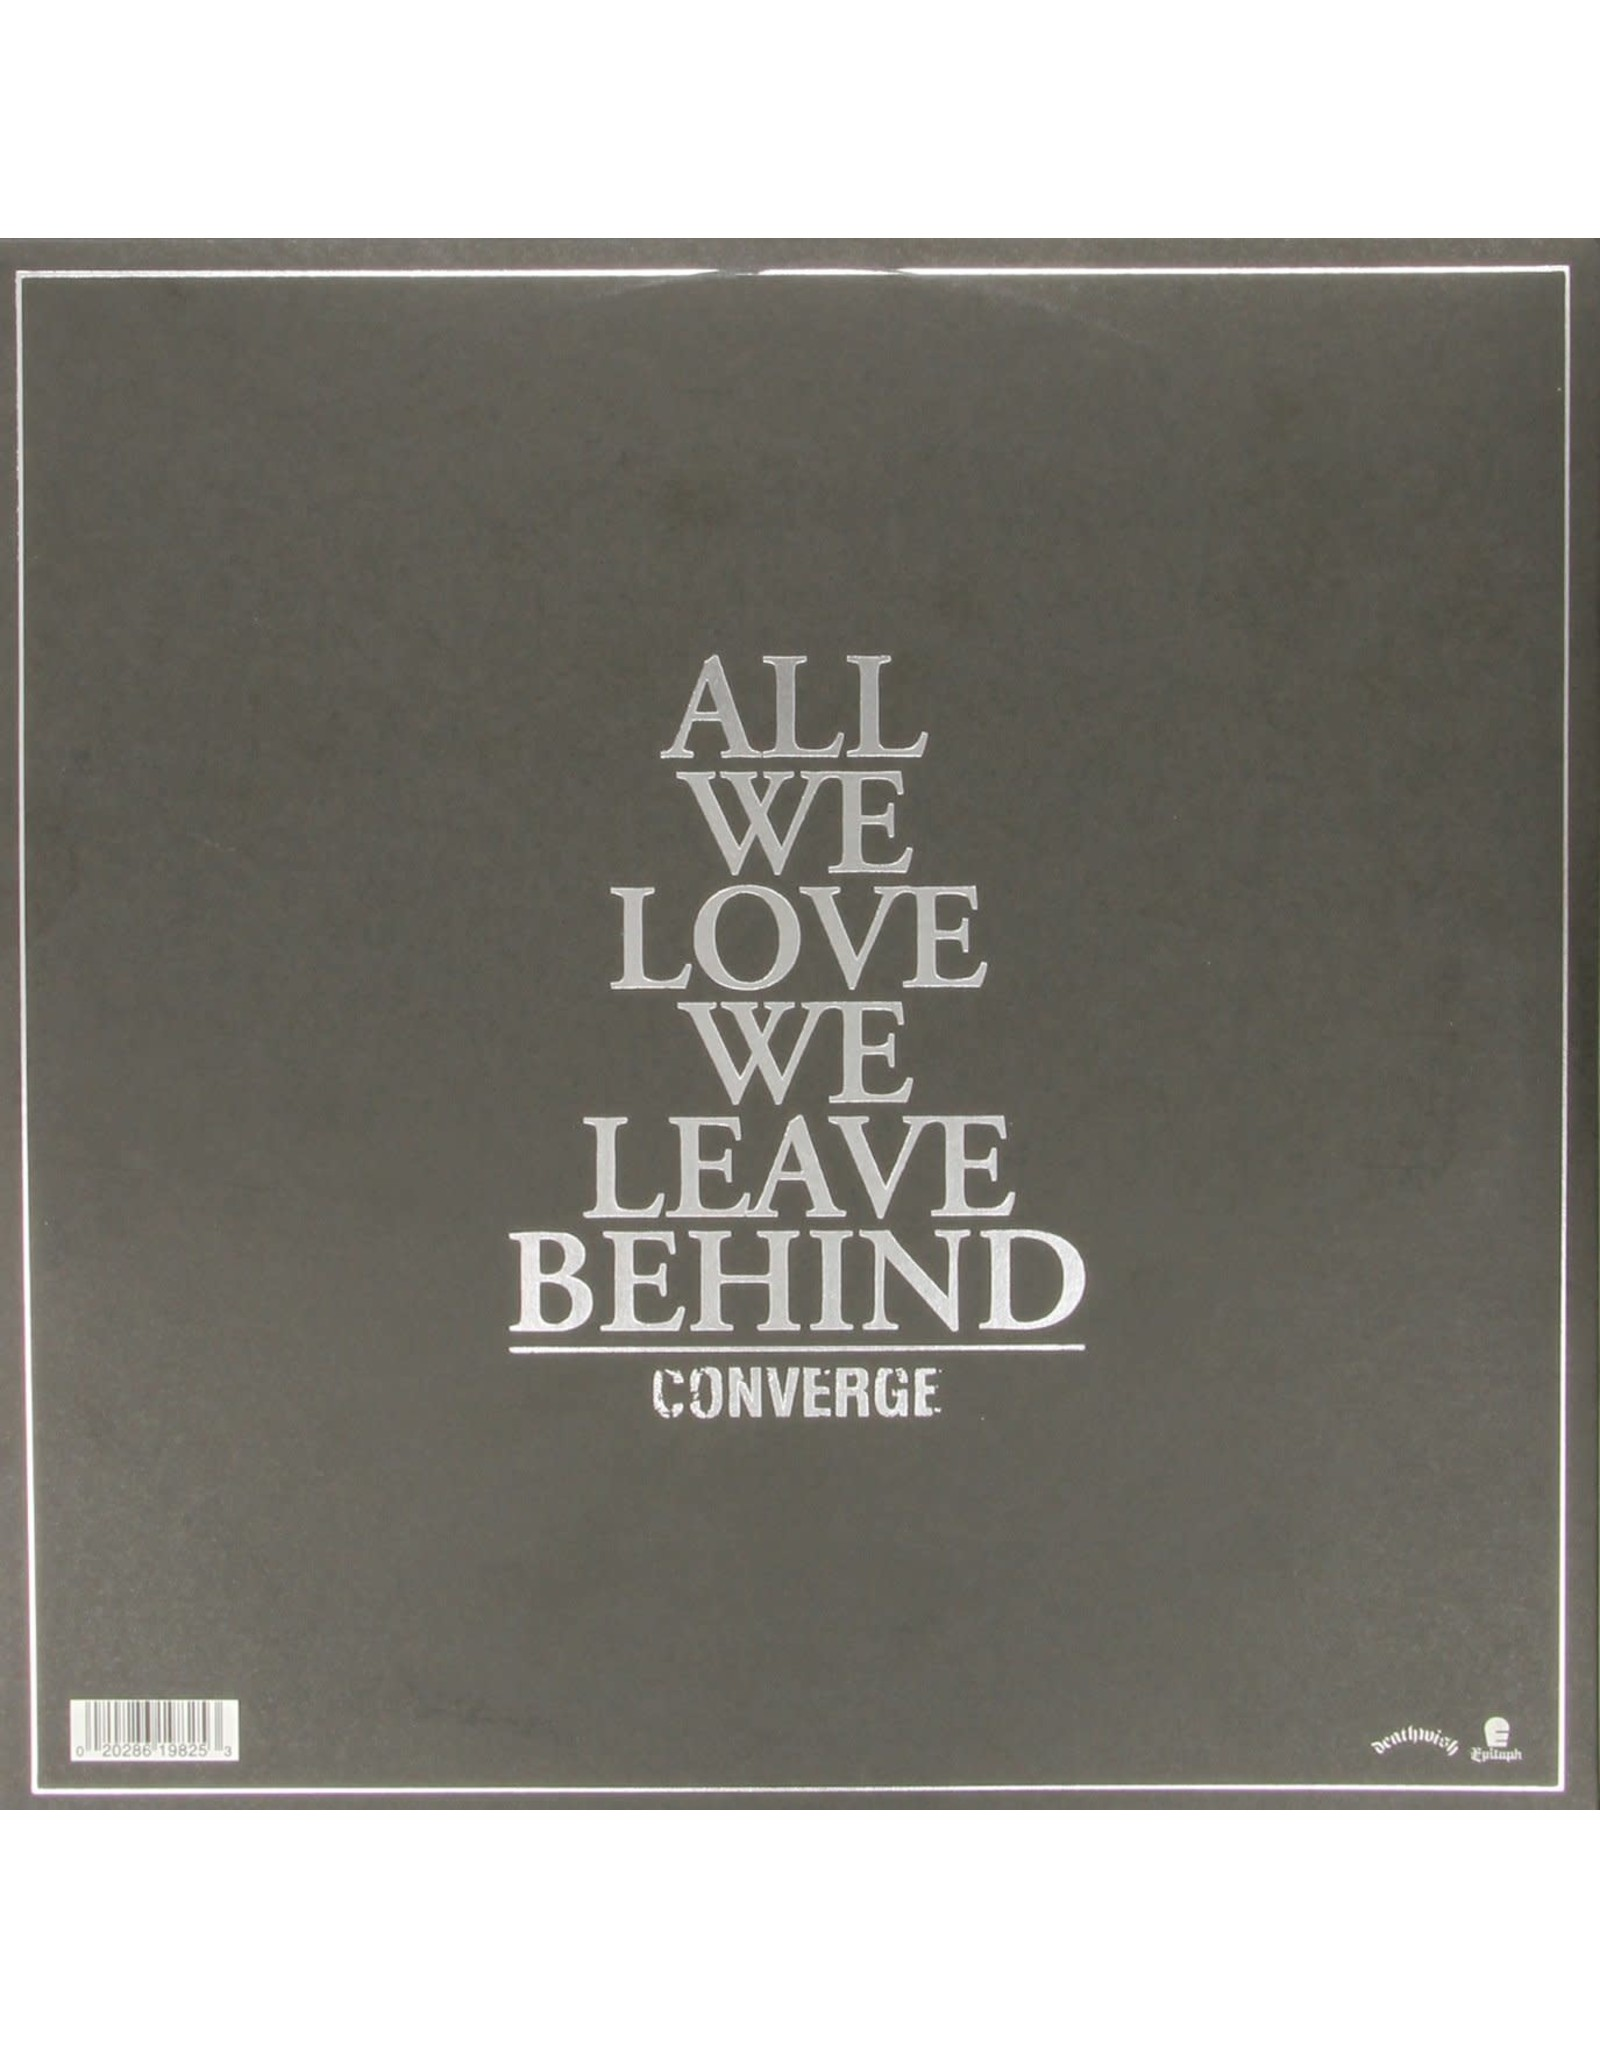 Converge - All We Love We Leave Behind